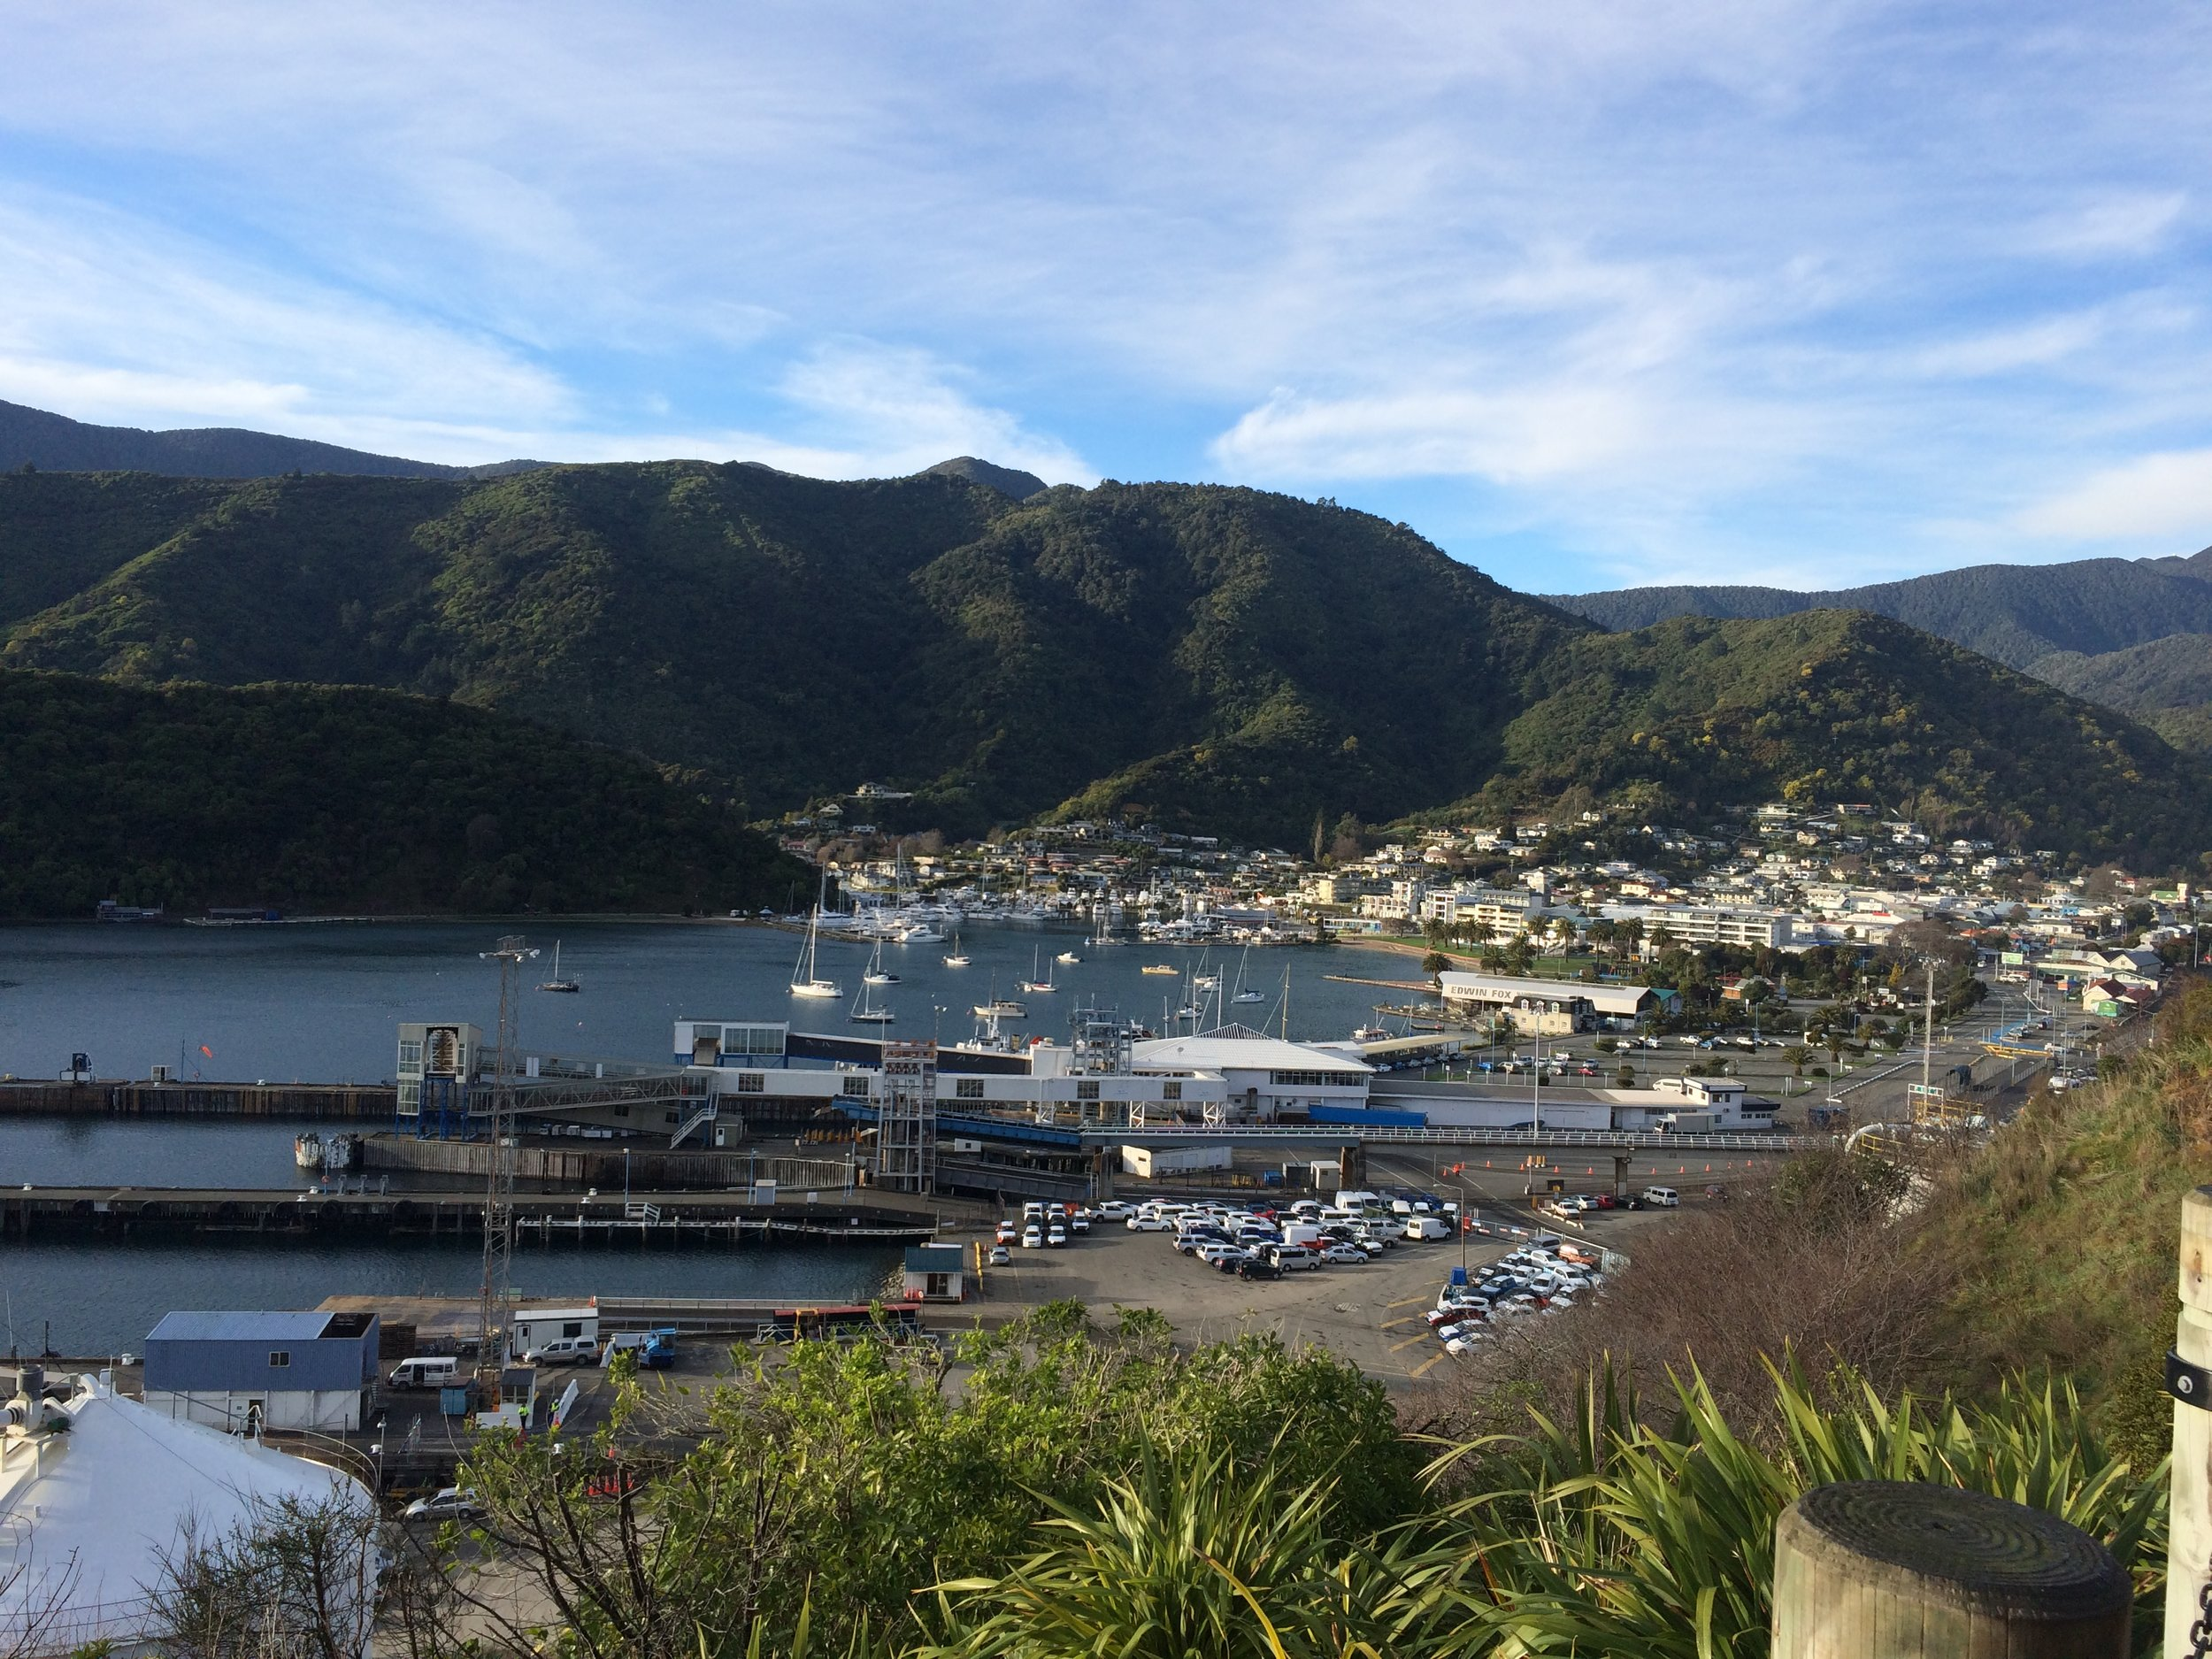 View of Picton harbor from the beginning of our drive